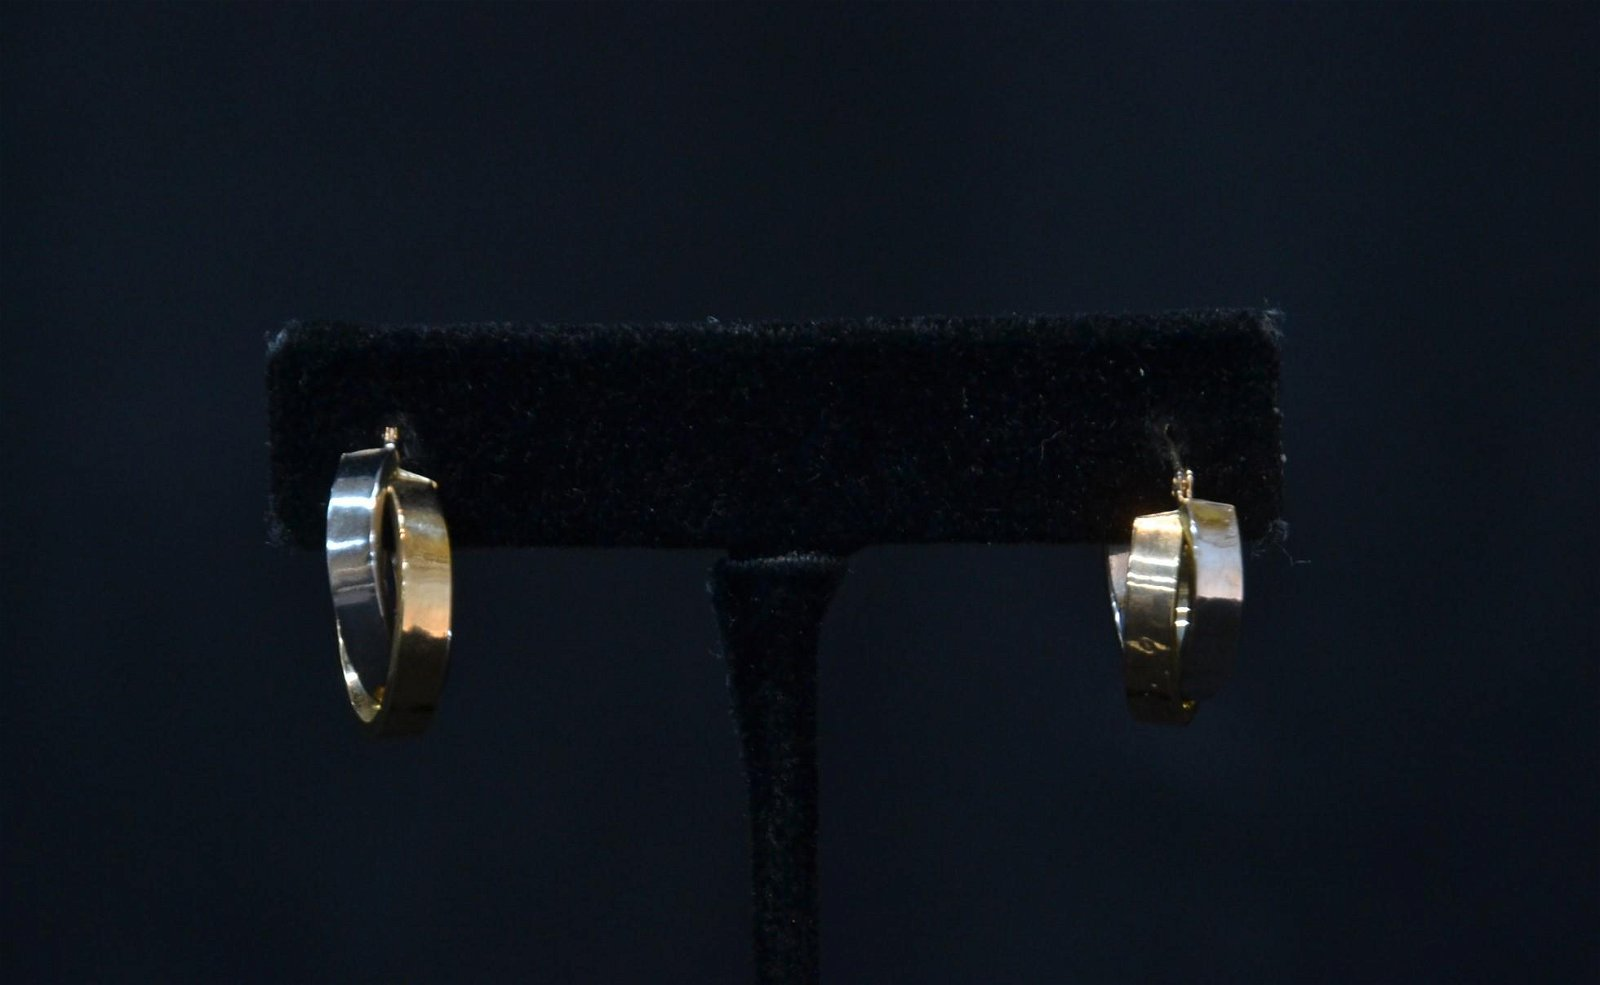 (Pr) 2-TONE 14kt GOLD EARRINGS - 1.8grams